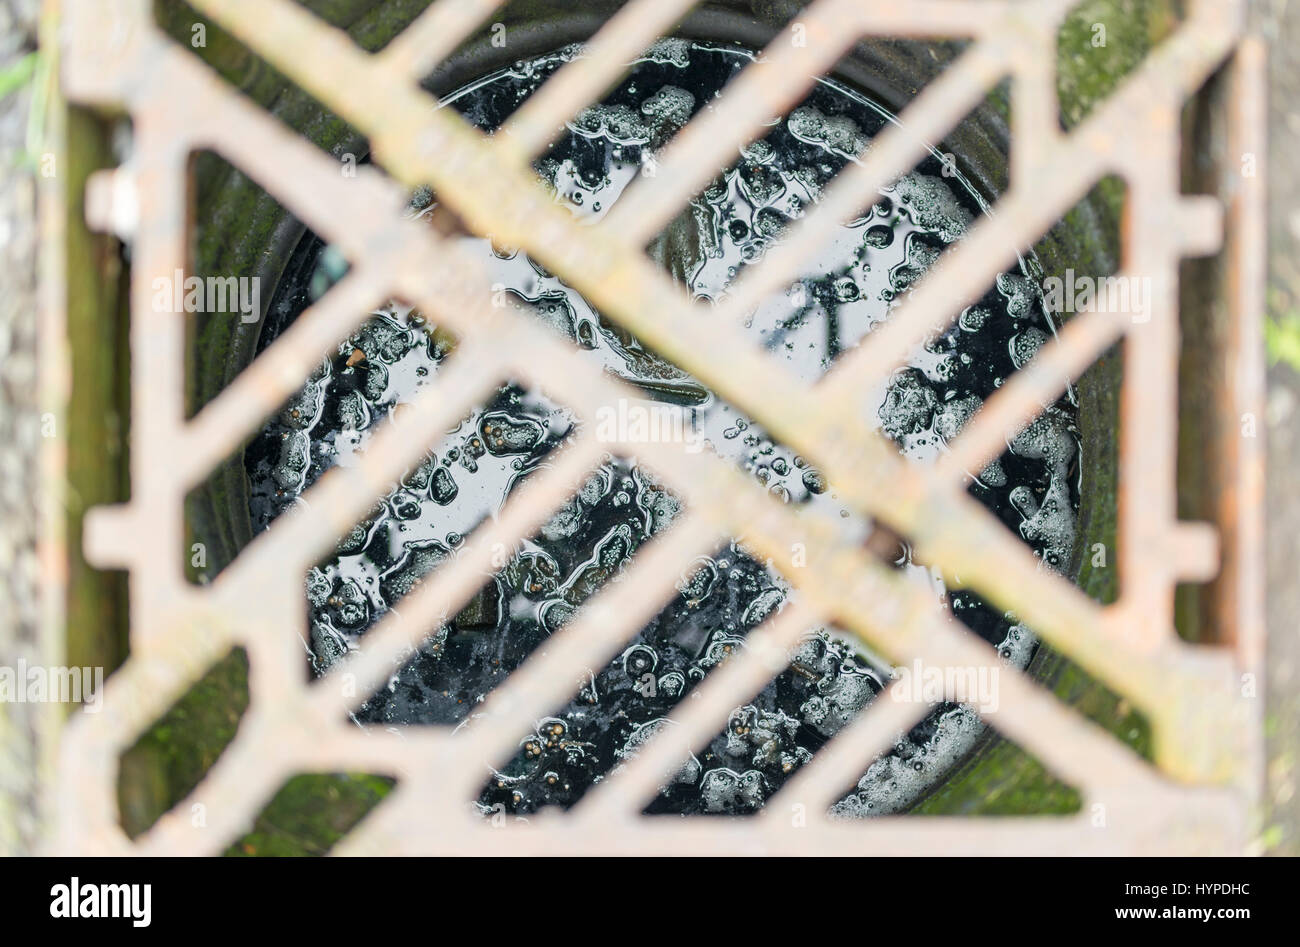 View looking down into a storm drain, with the grating out of focus, and showing wet sludge at the bottom of the - Stock Image